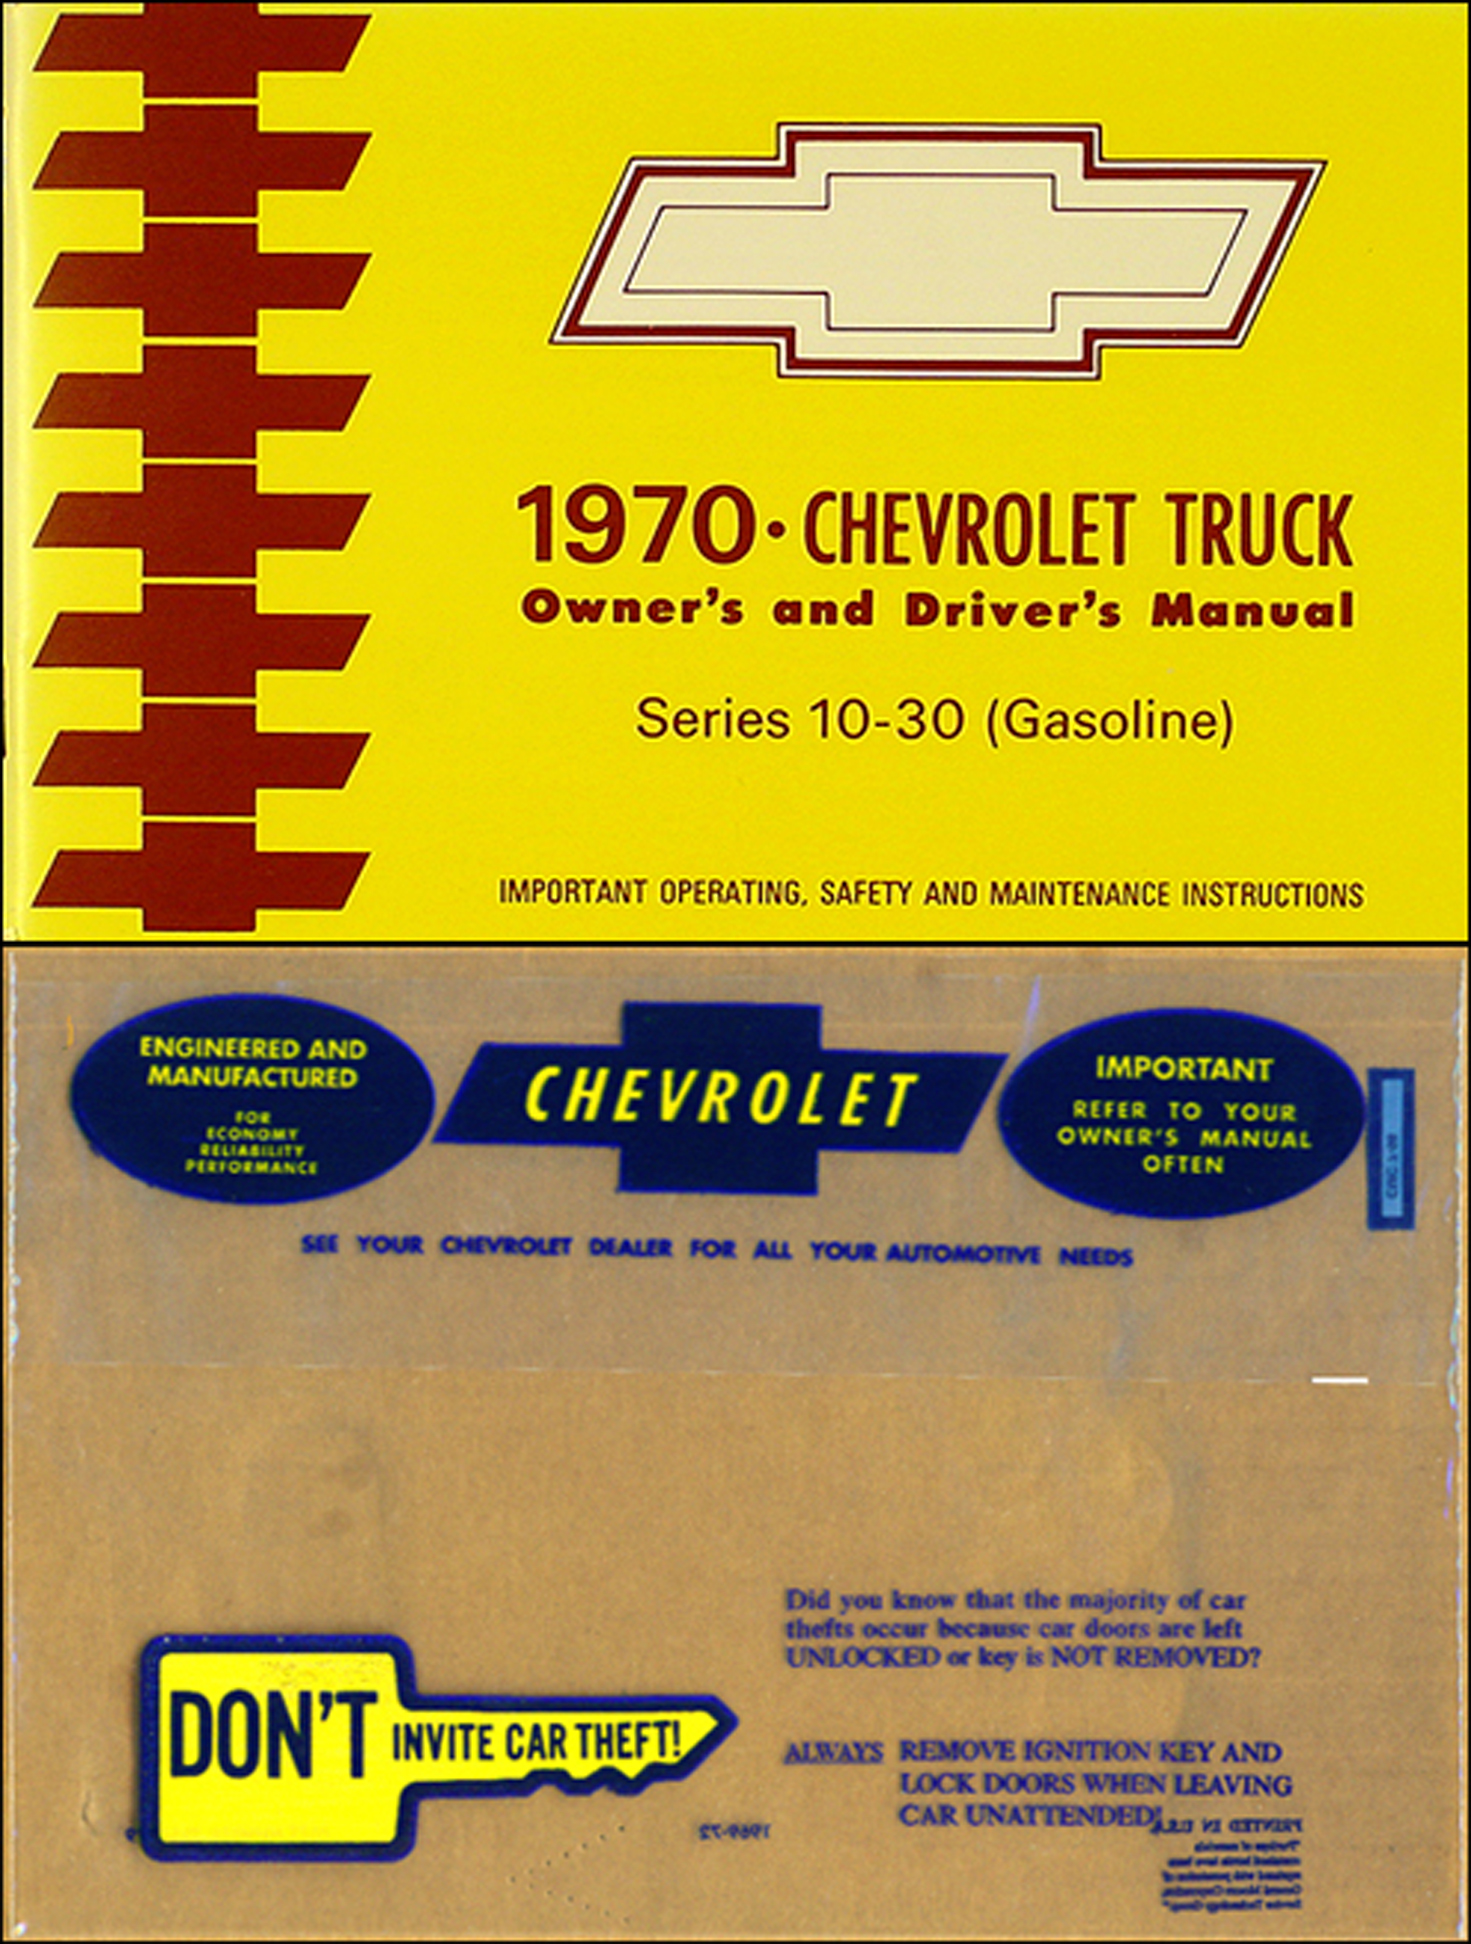 1967 chevy pickup wiring diagram indexnewspaper com. Black Bedroom Furniture Sets. Home Design Ideas